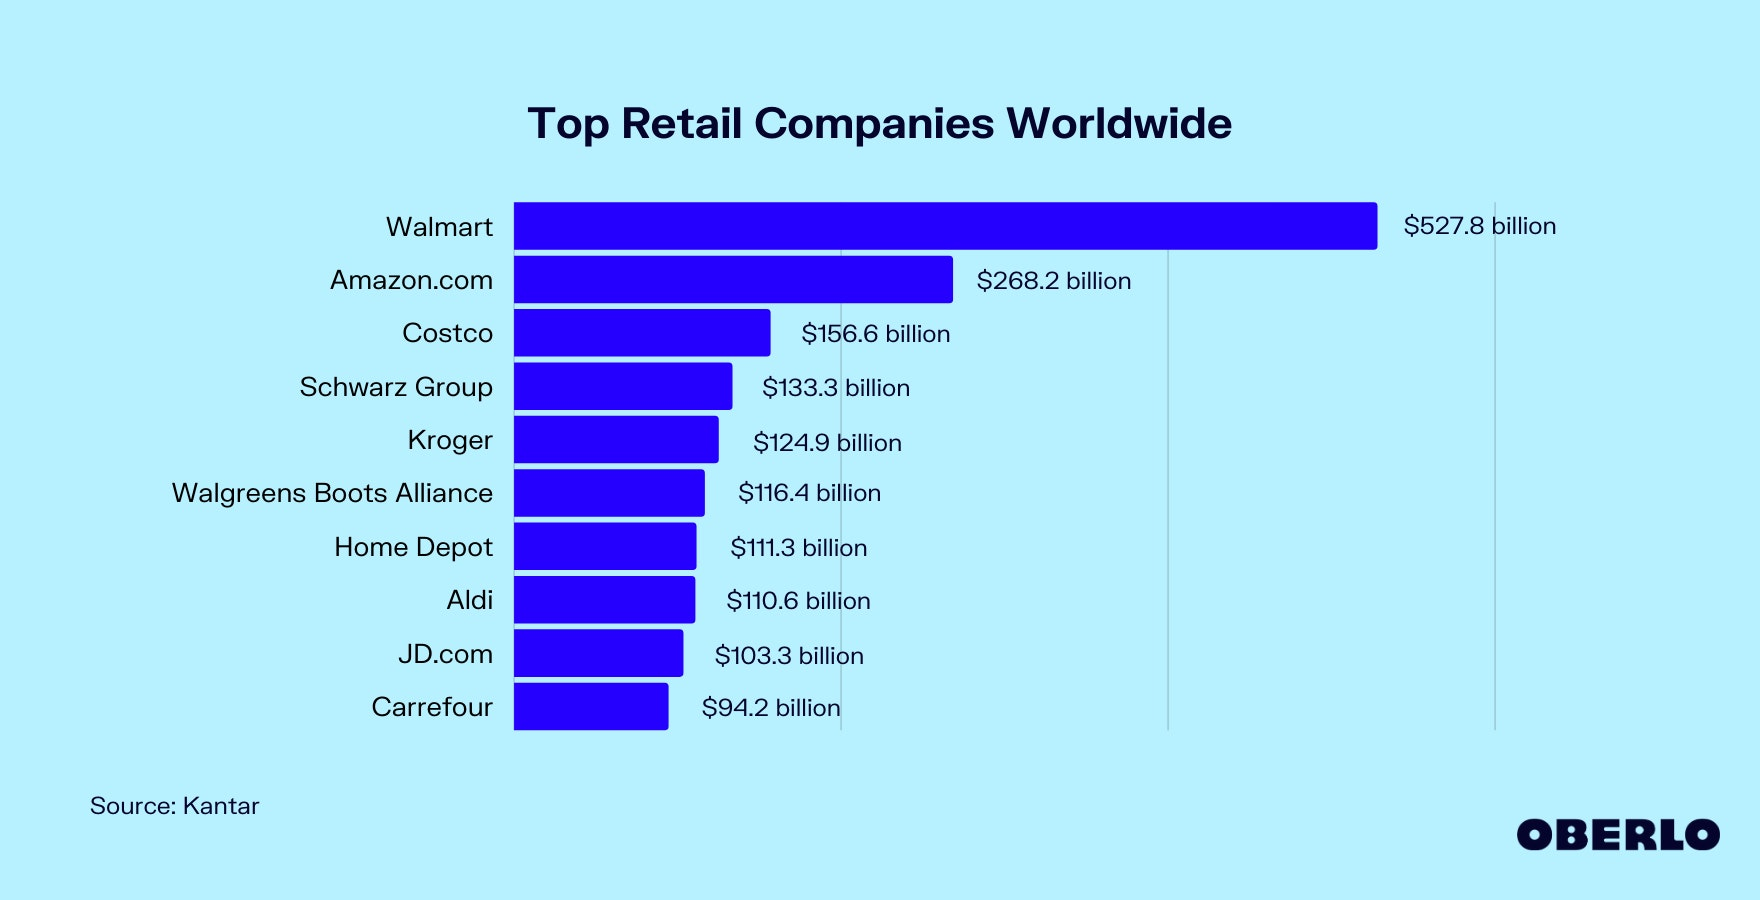 Chart of Top Retail Companies Worldwide